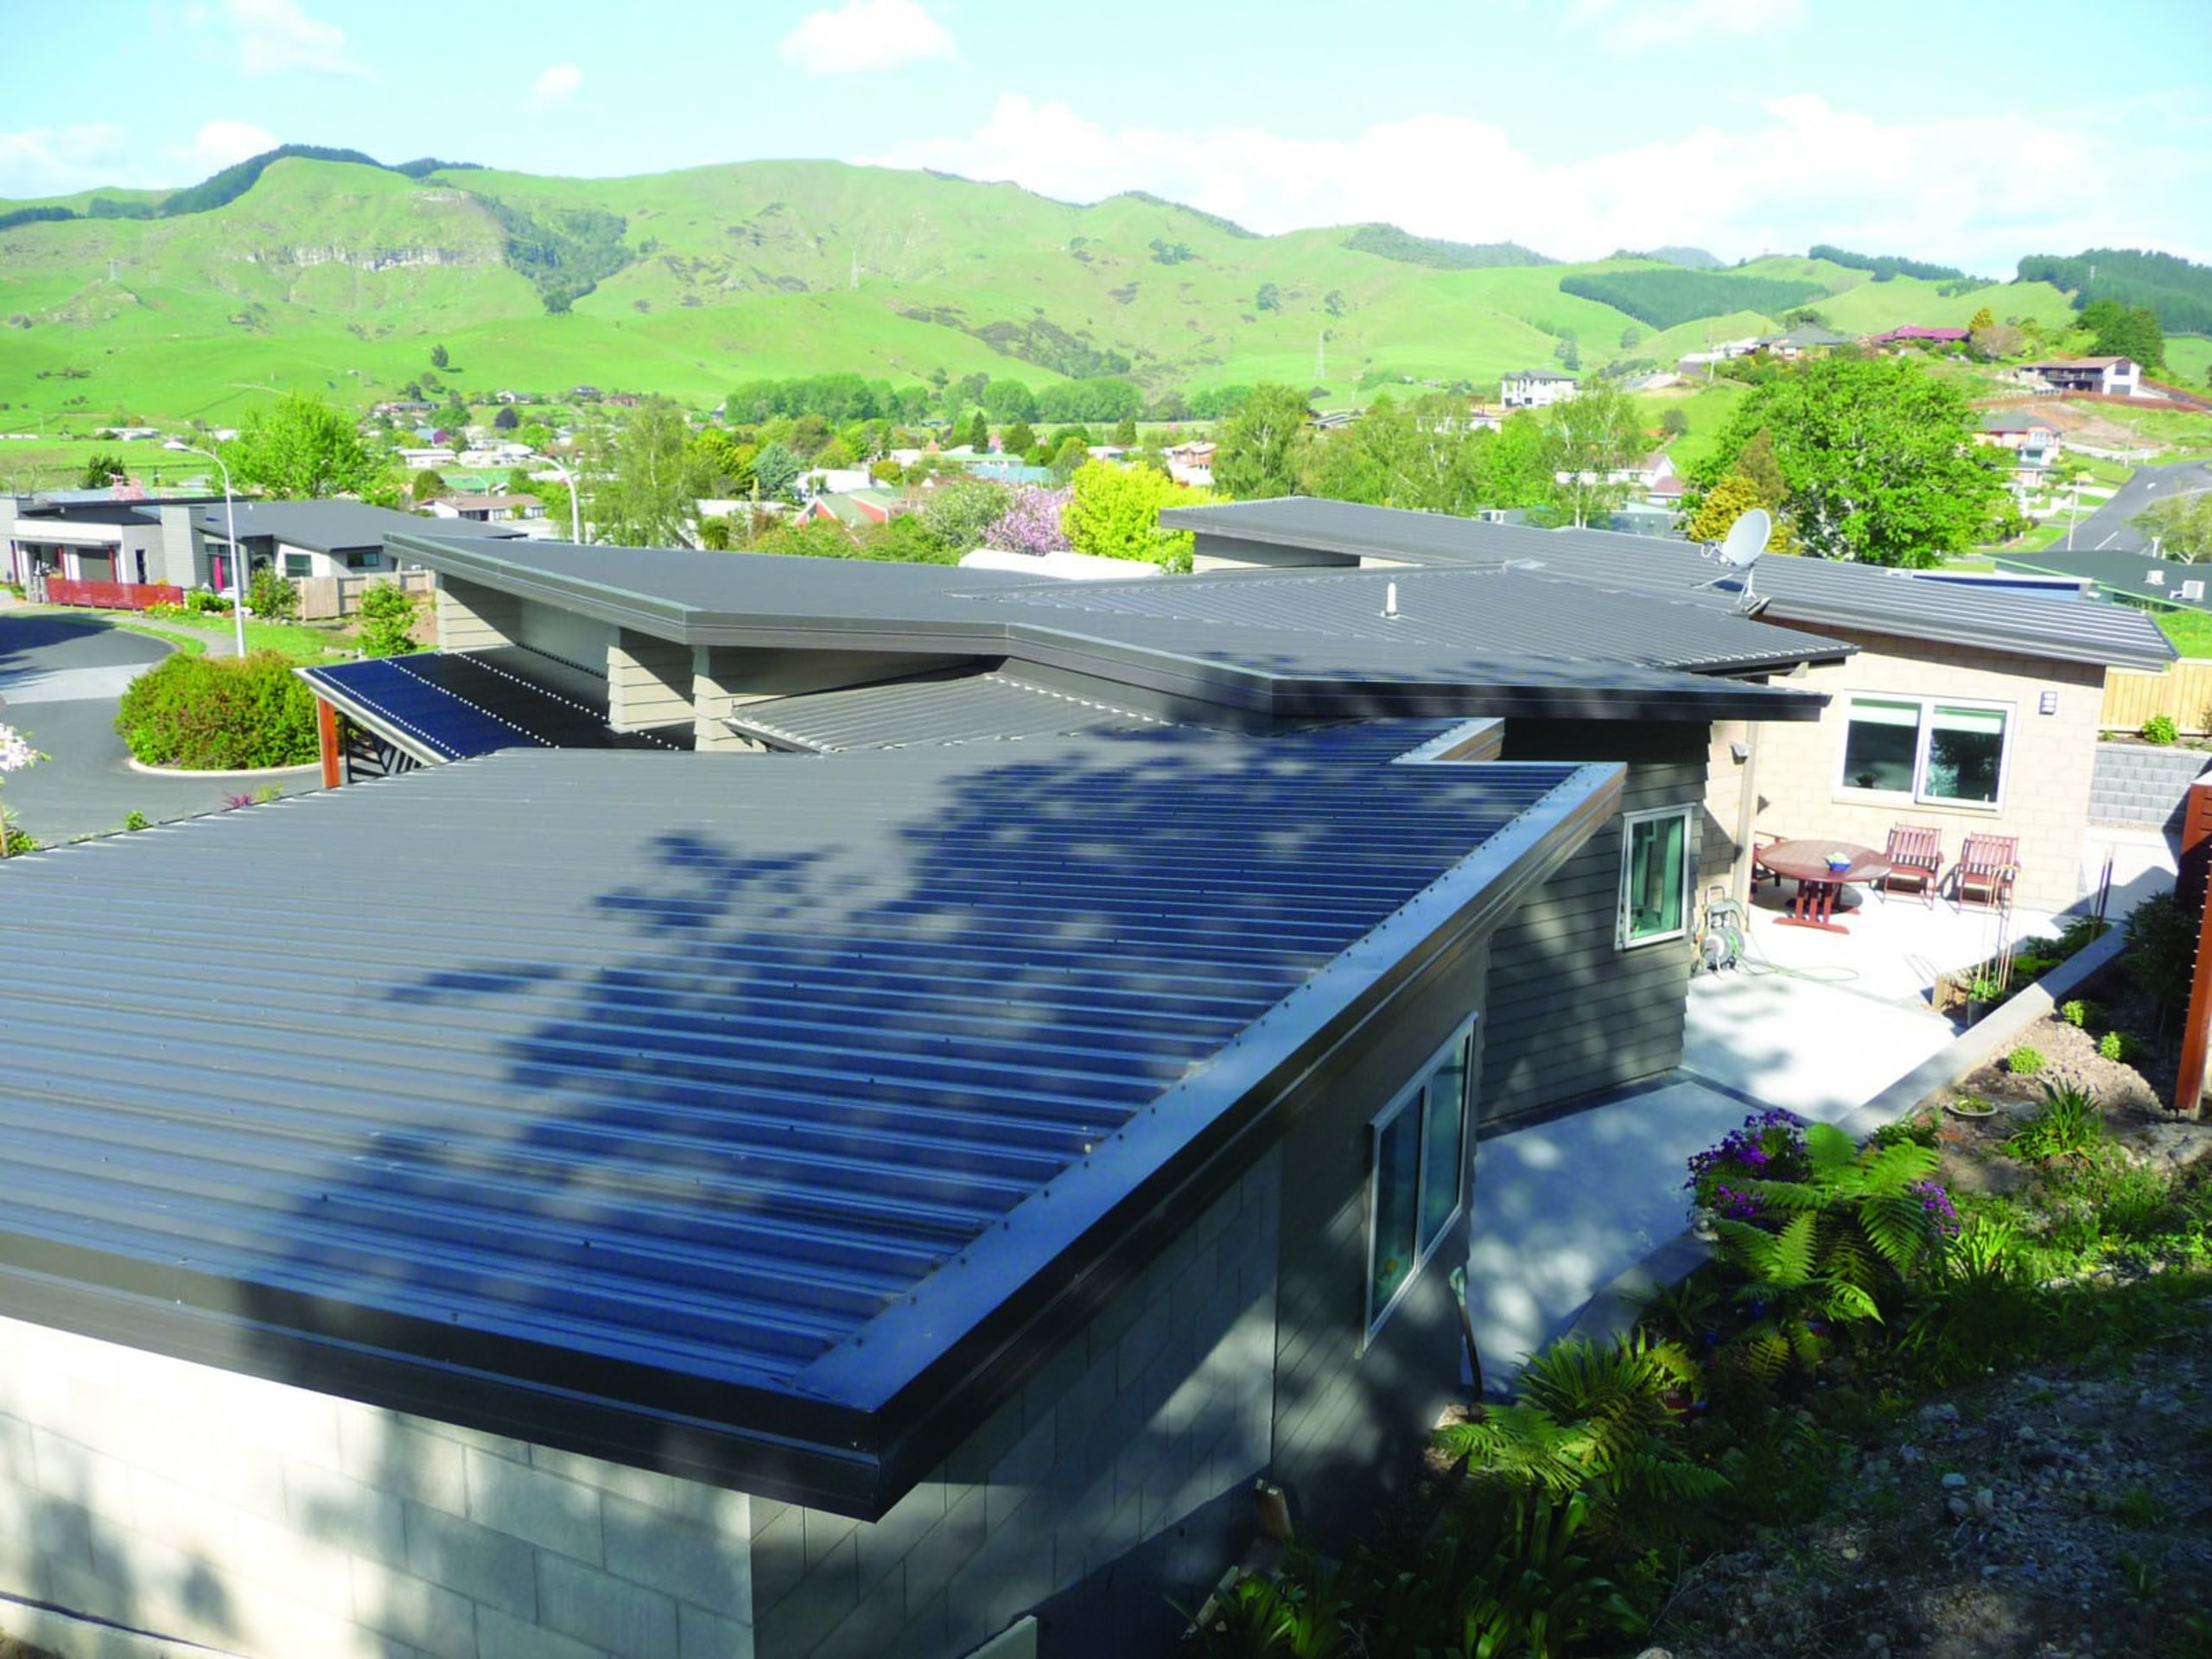 Elens Home - Syleline Iron Sand - Roof daylighting, energy, house, leisure, outdoor structure, real estate, roof, solar energy, solar power, water, white